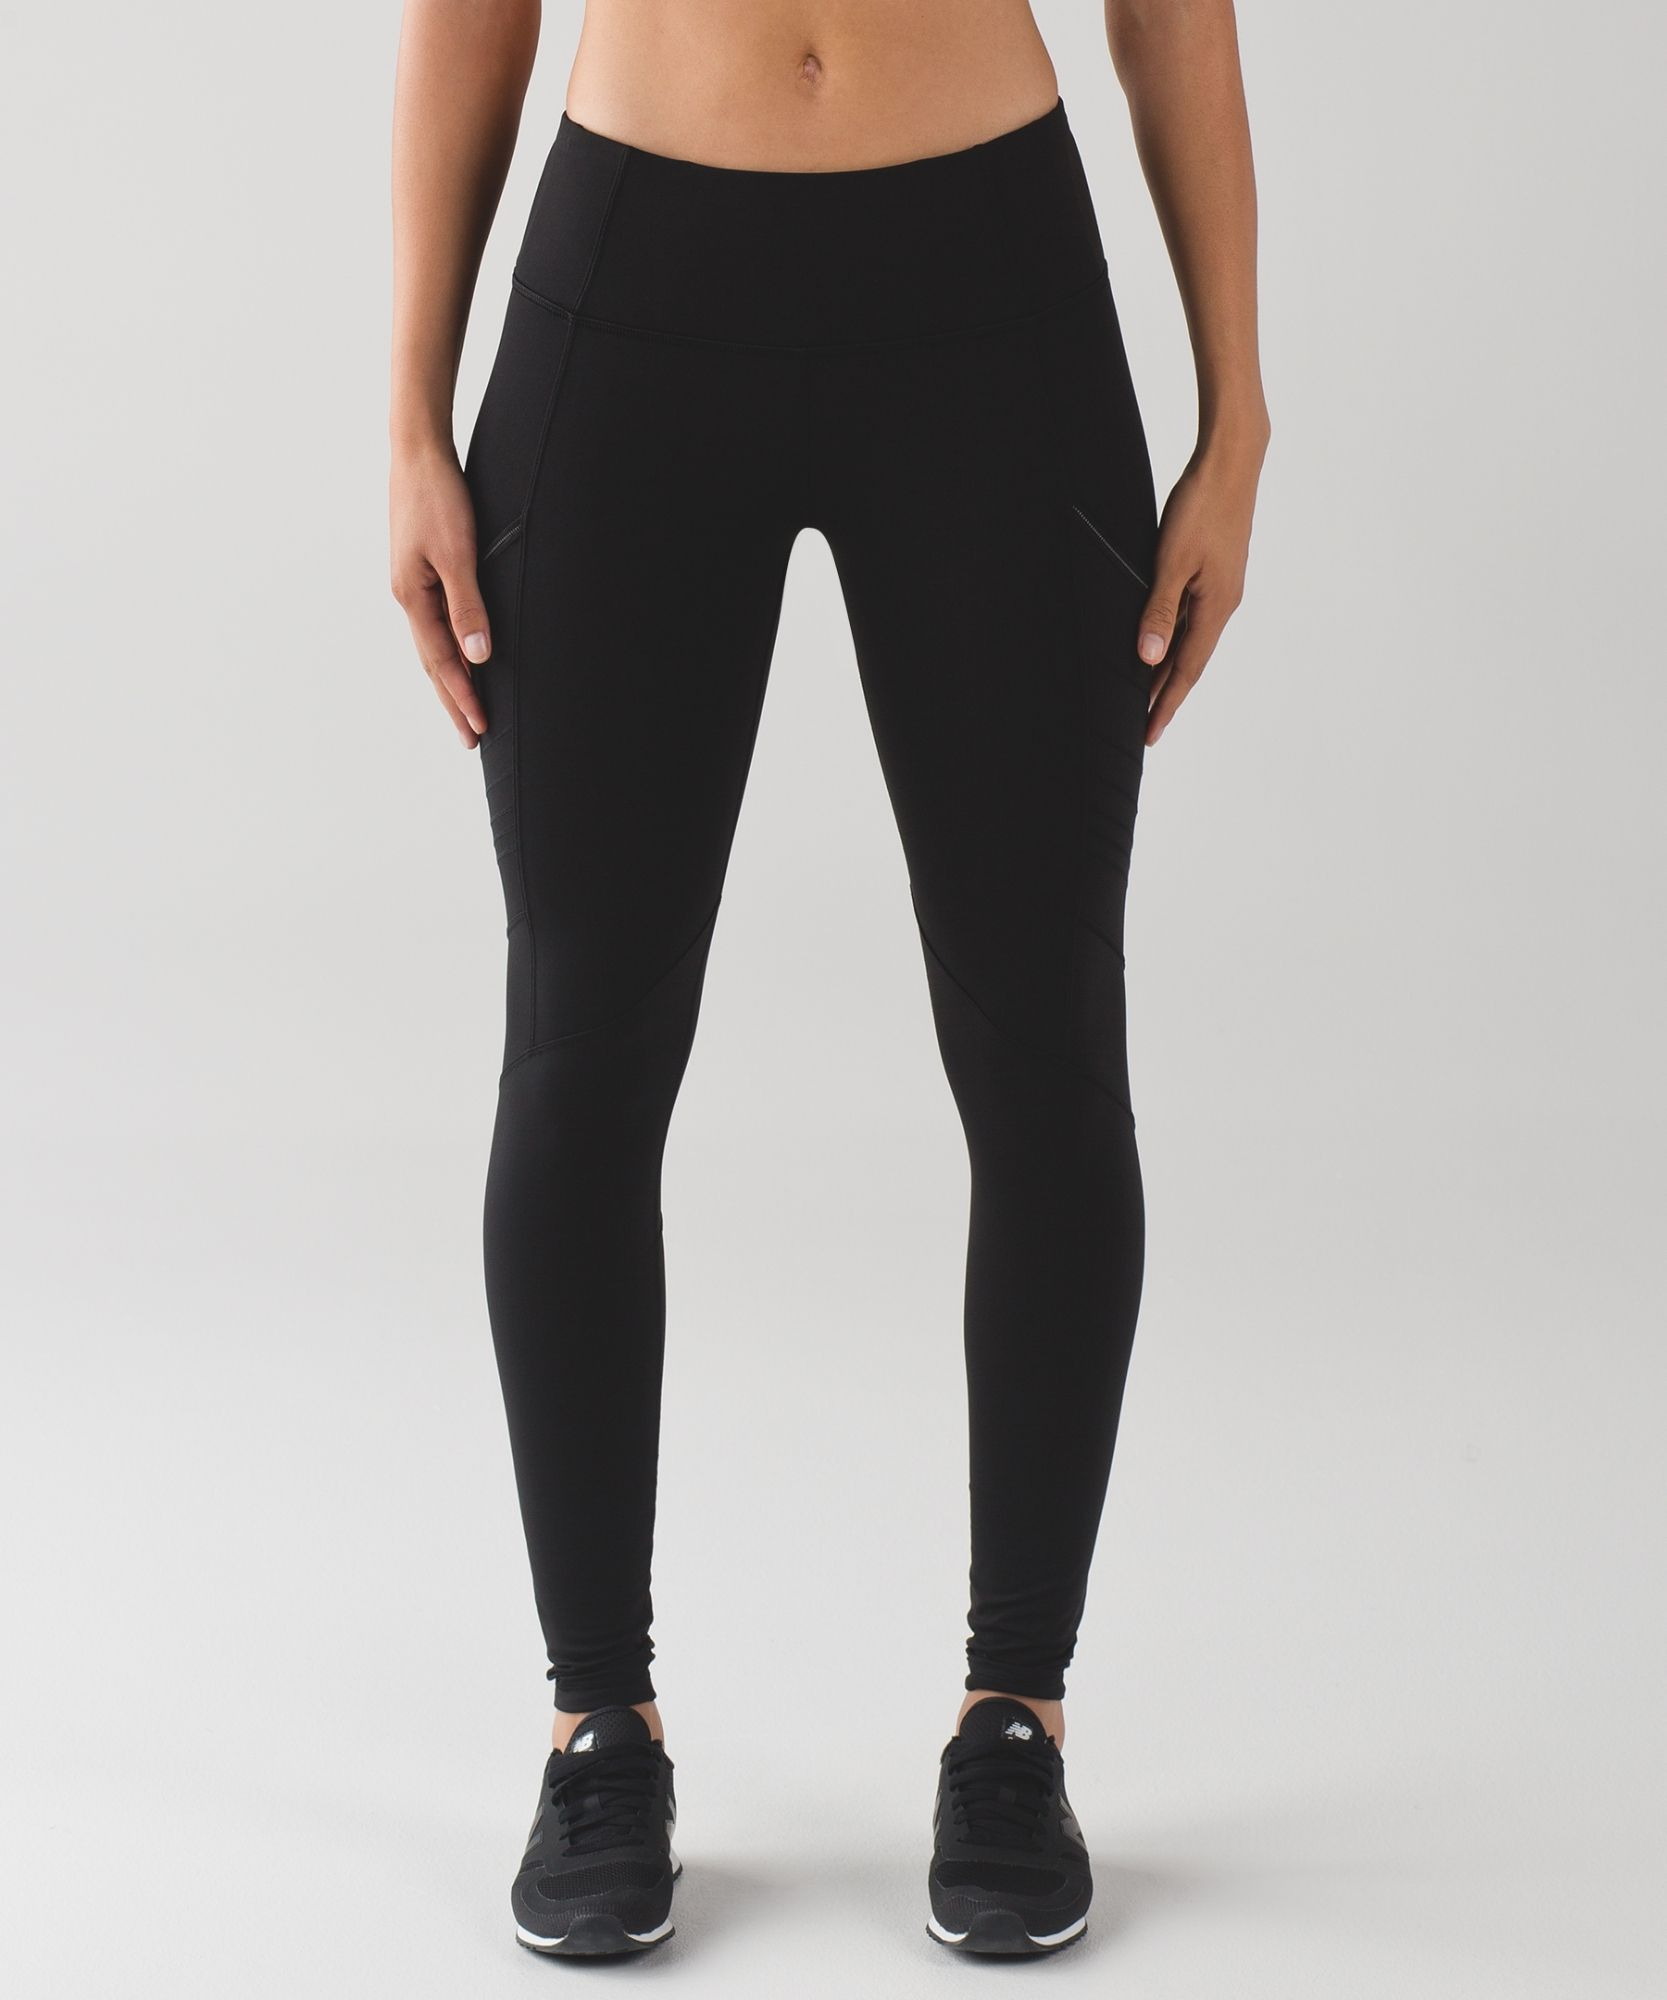 b01d62b62b029 LULULEMON Fresh Tracks Tight (size 4) These tights were designed with  sweat-wicking Tech Fleece fabric, brushed on the inside for warmth without  weight to ...